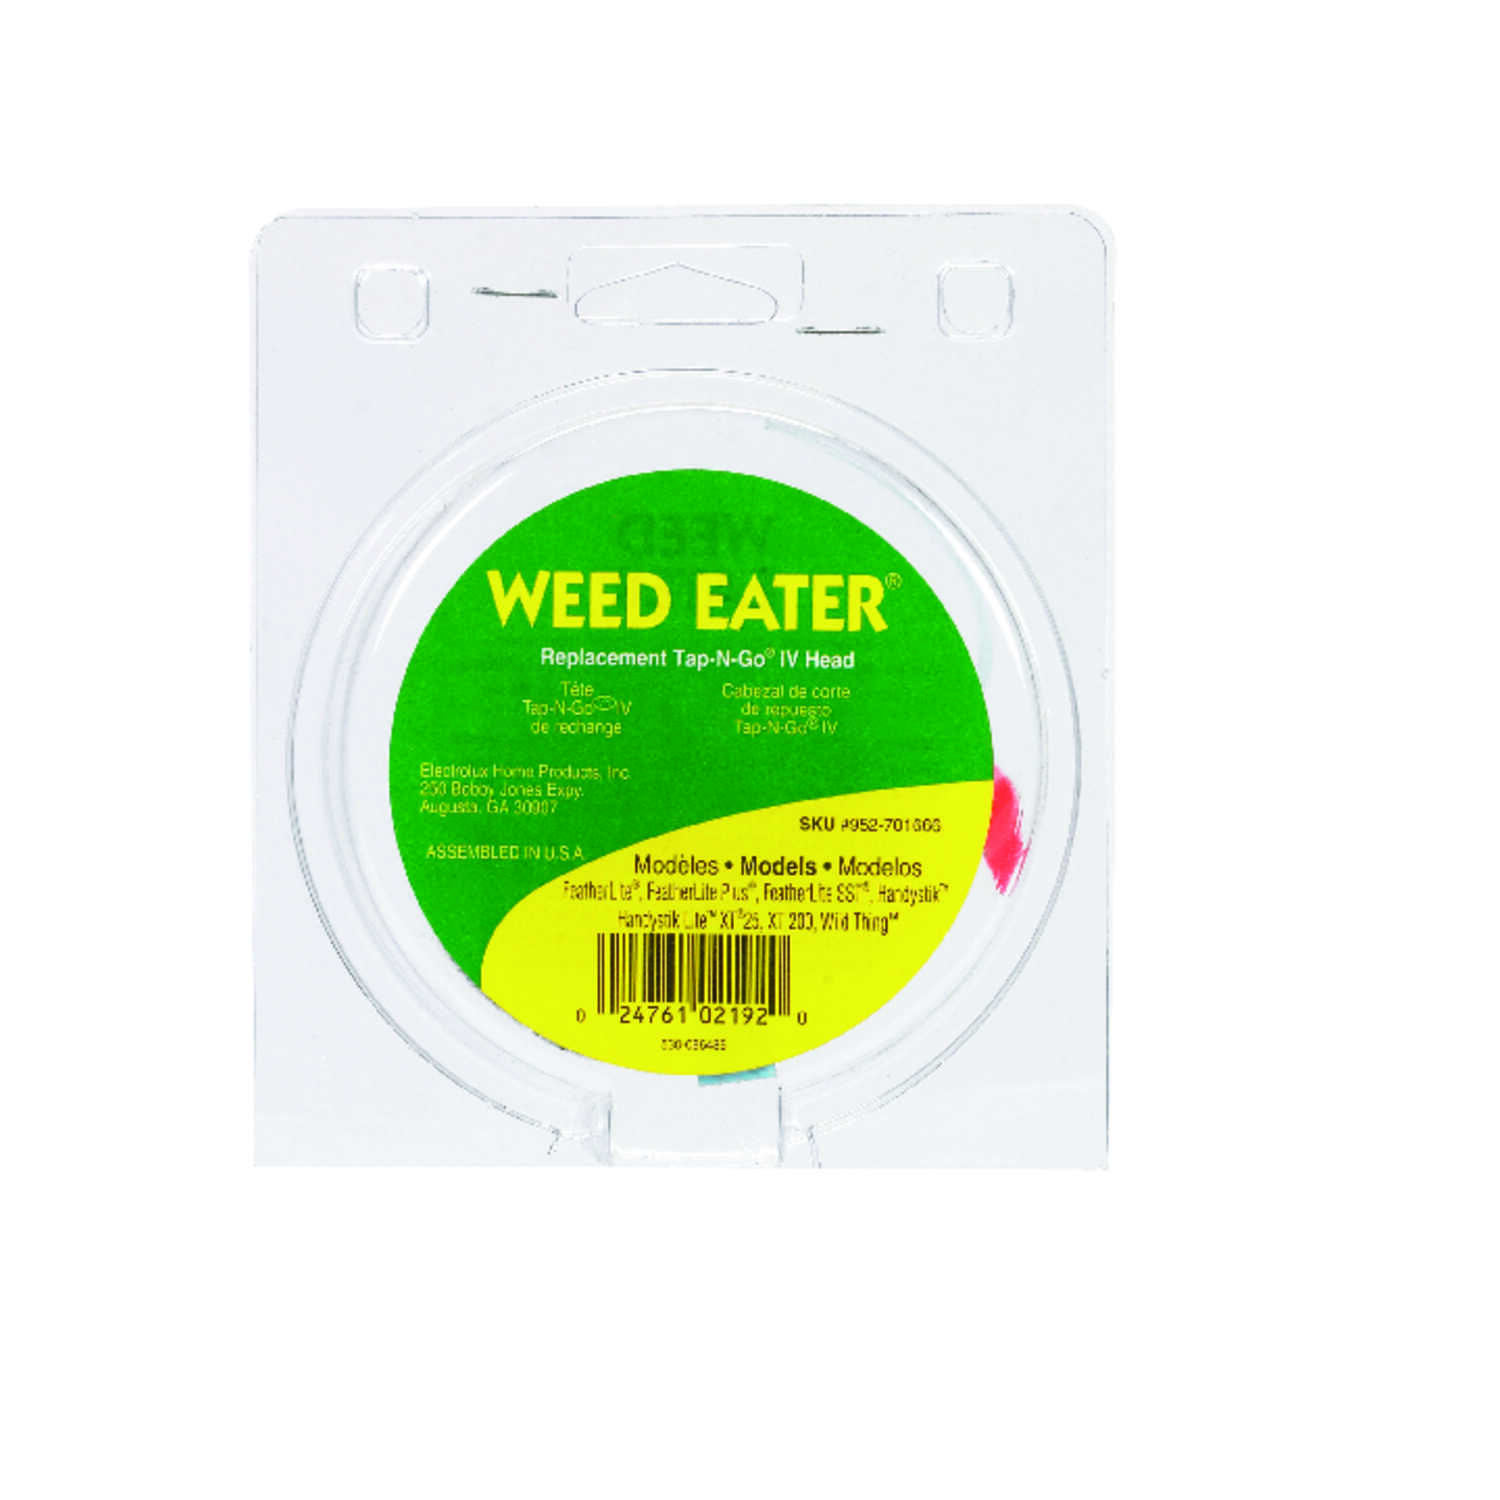 Weed Eater  Tap-N-Go IV  Trimmer Head